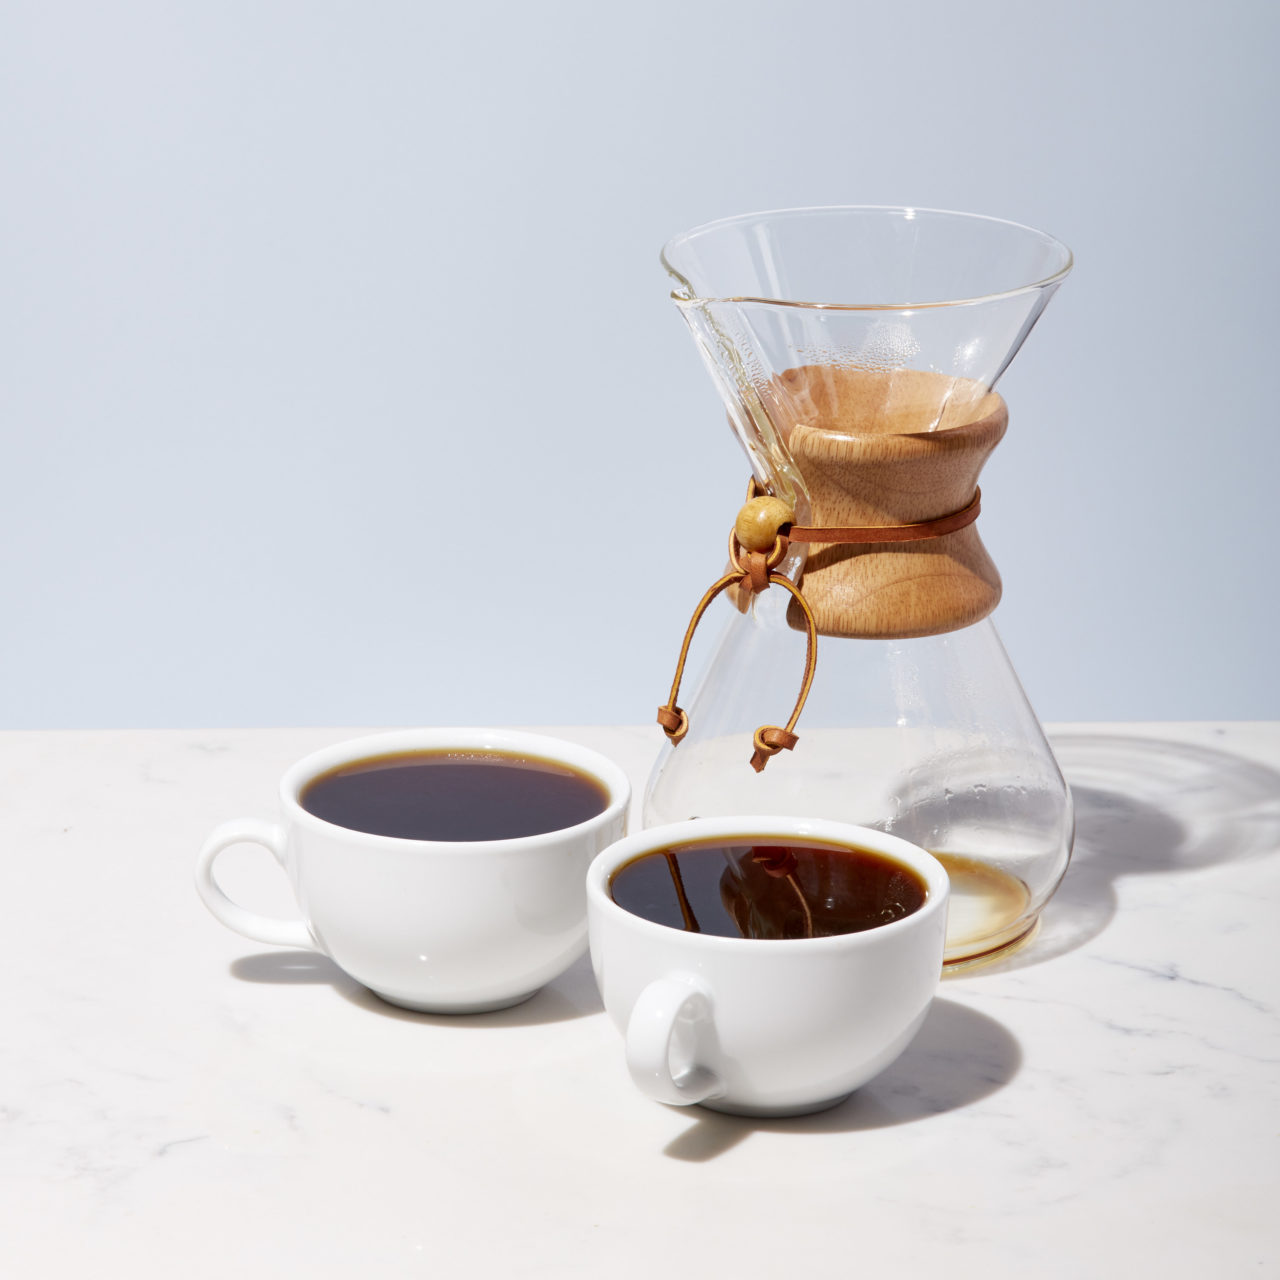 8-Cup Chemex Coffee Maker